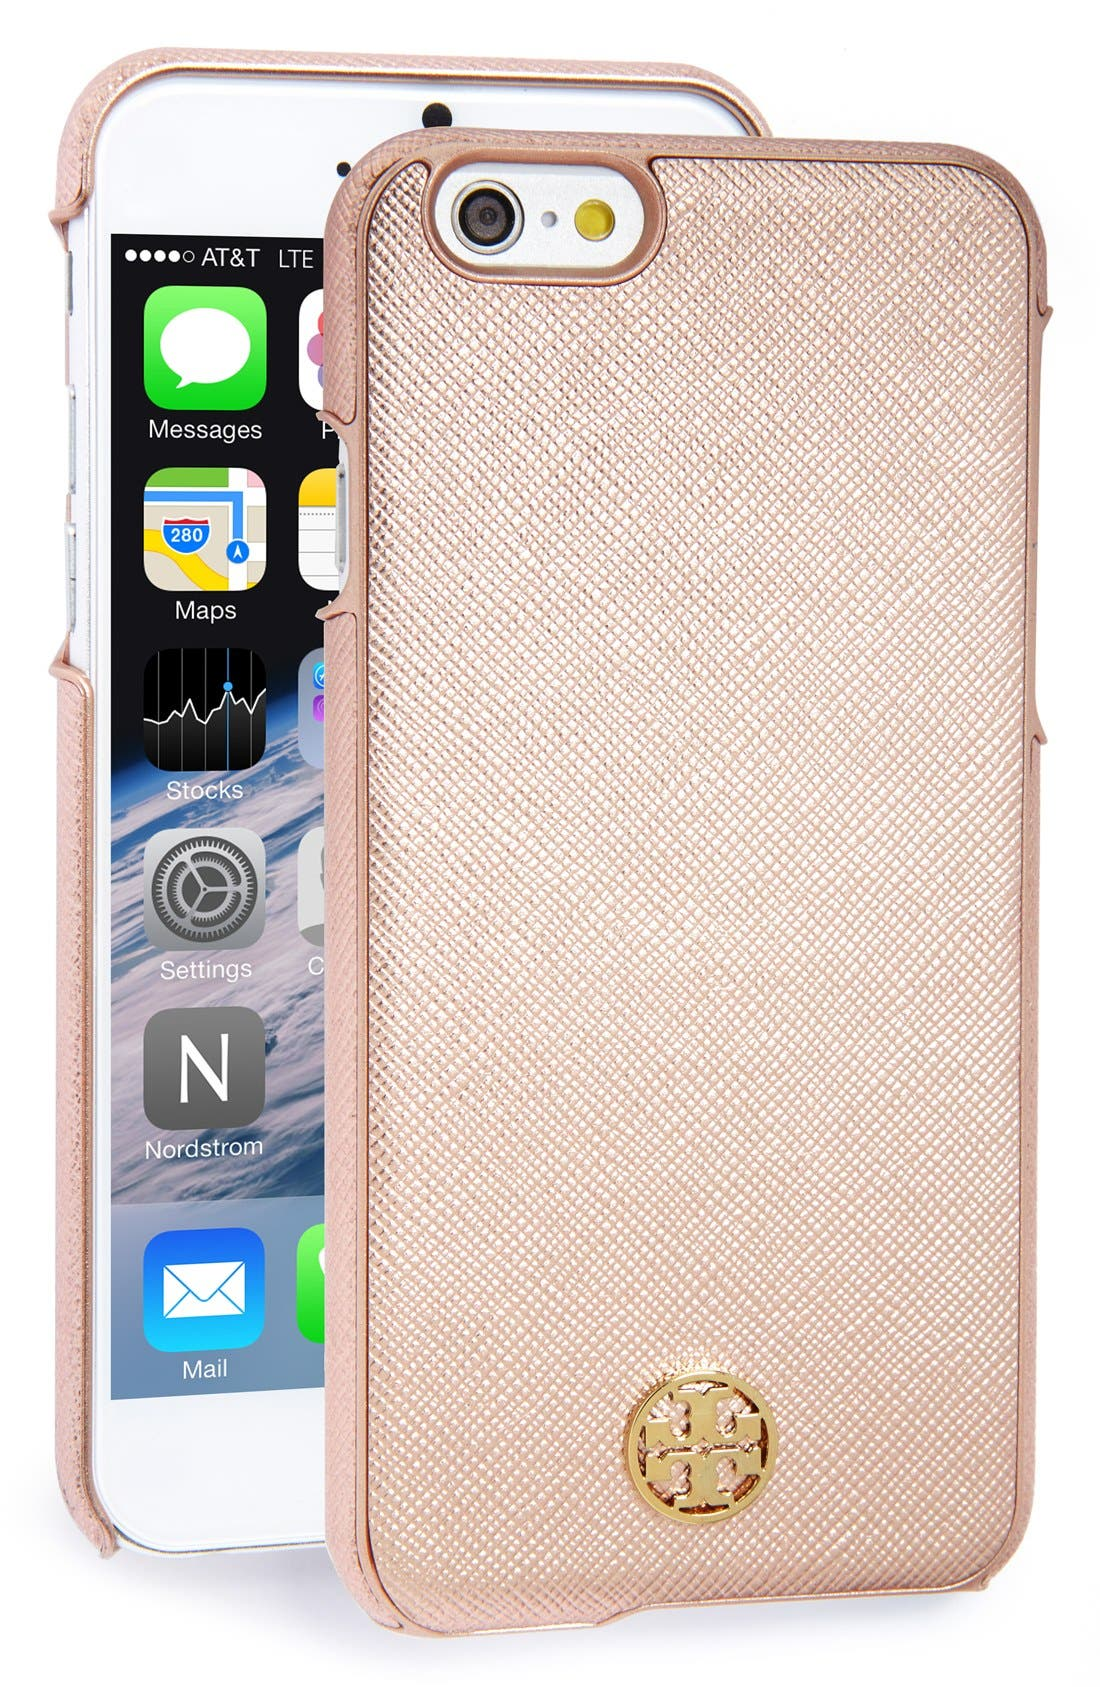 Main Image - Tory Burch 'Robinson' Saffiano Leather iPhone 6 Case